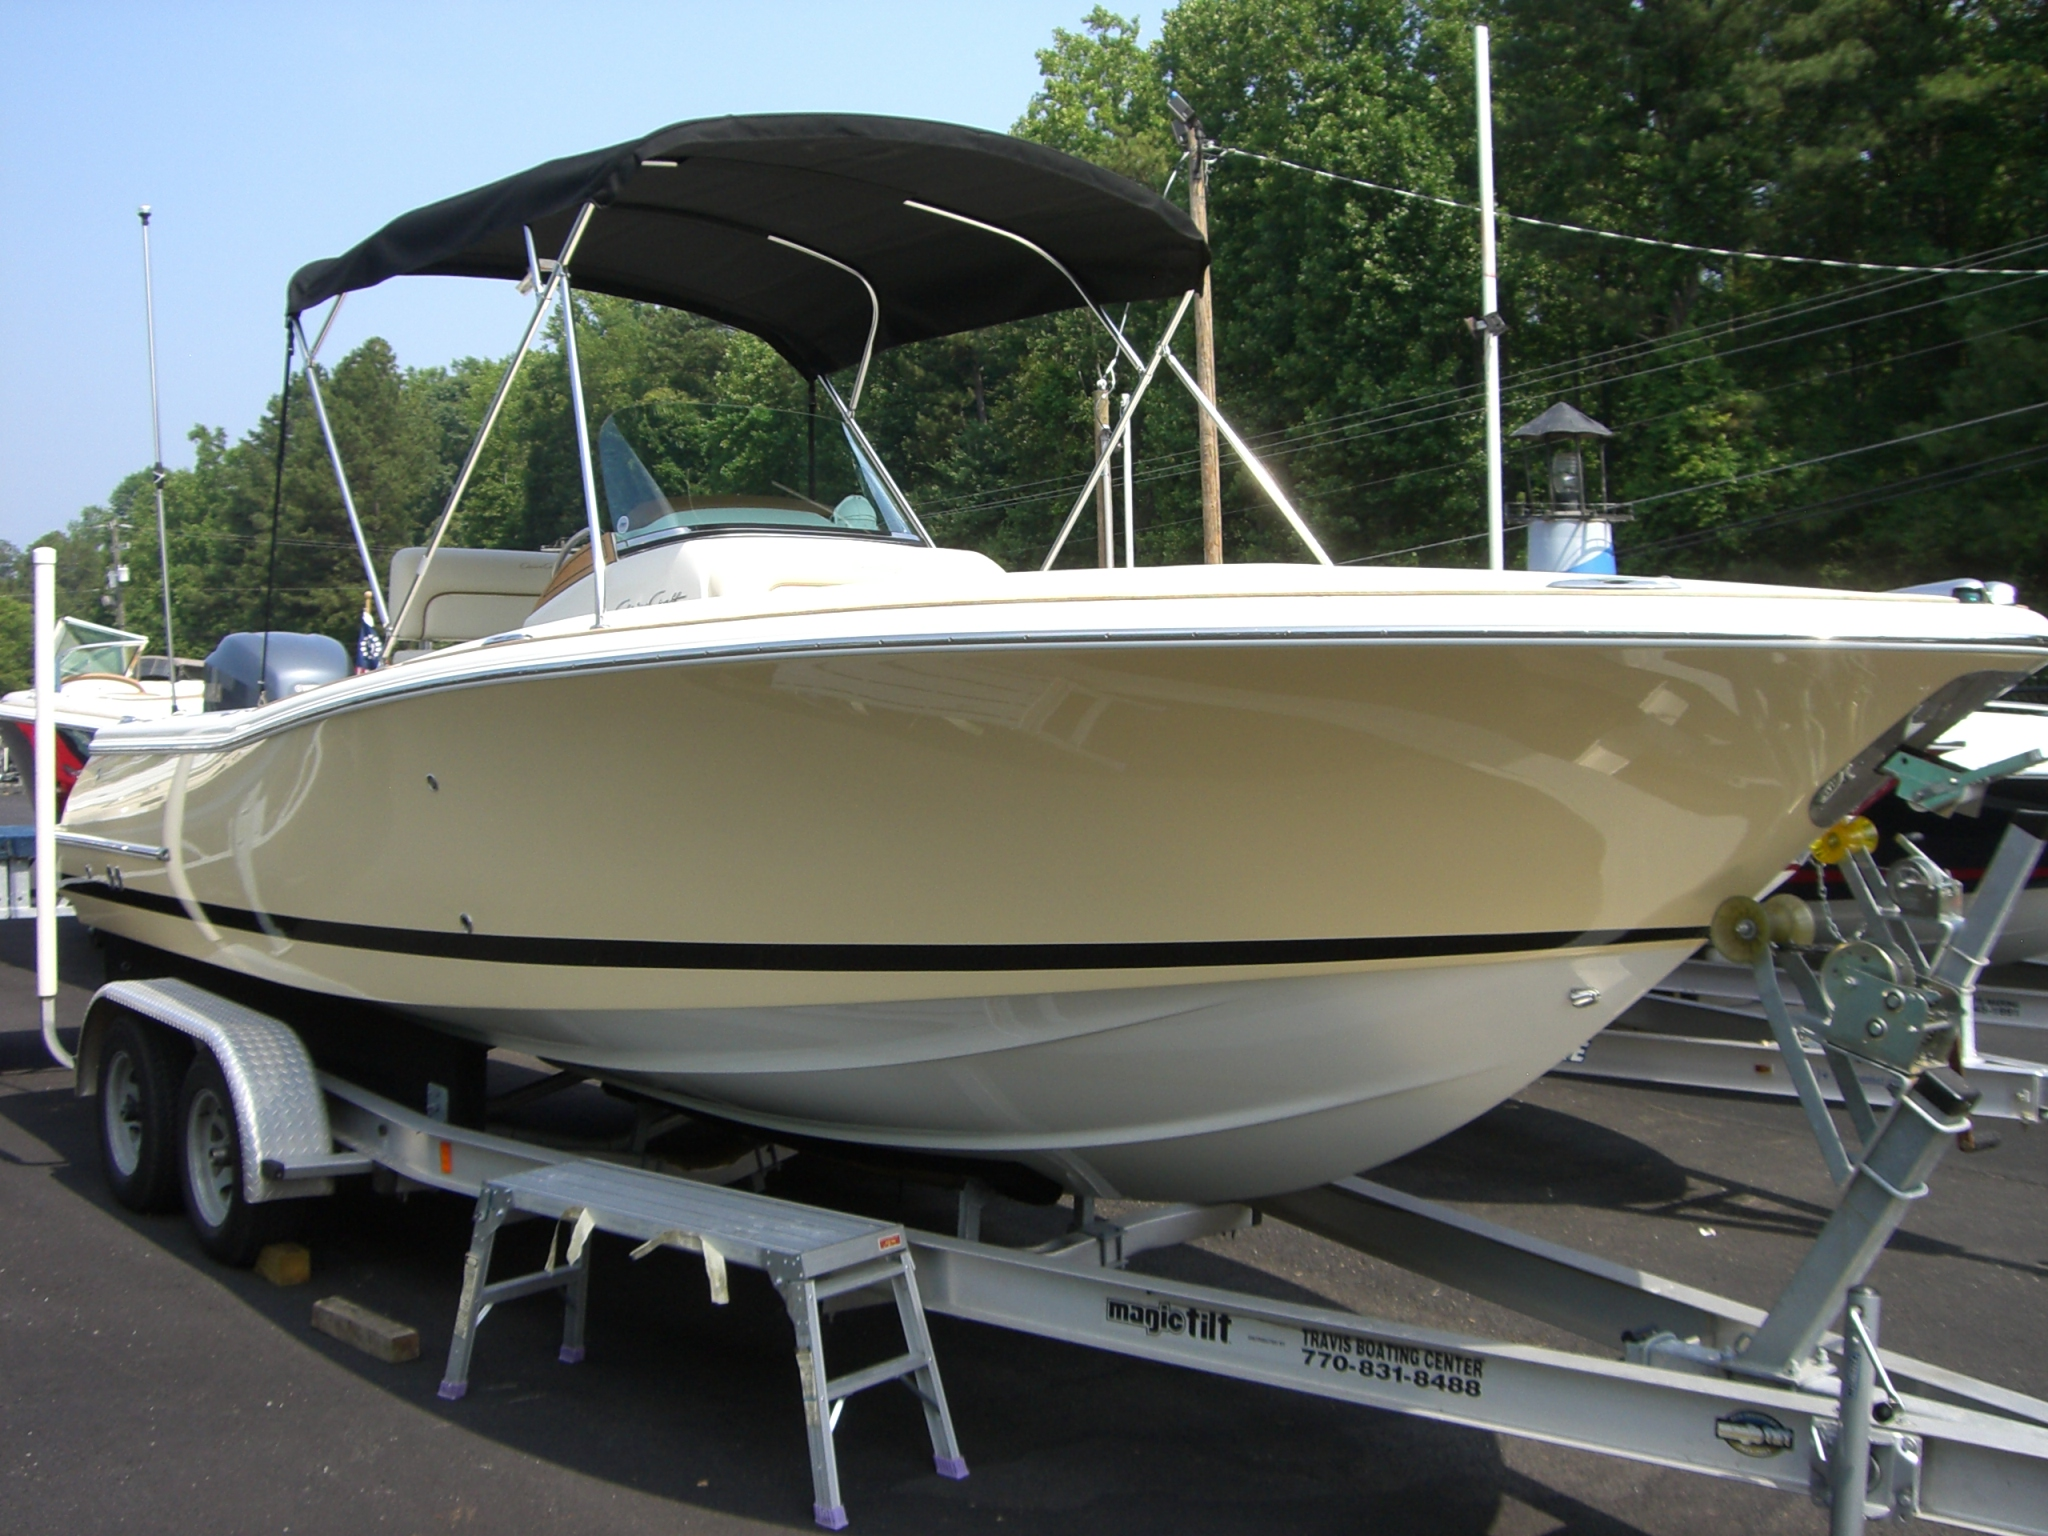 Boats for Sale, Used Boats, Boat Classified Ads, Power Boats